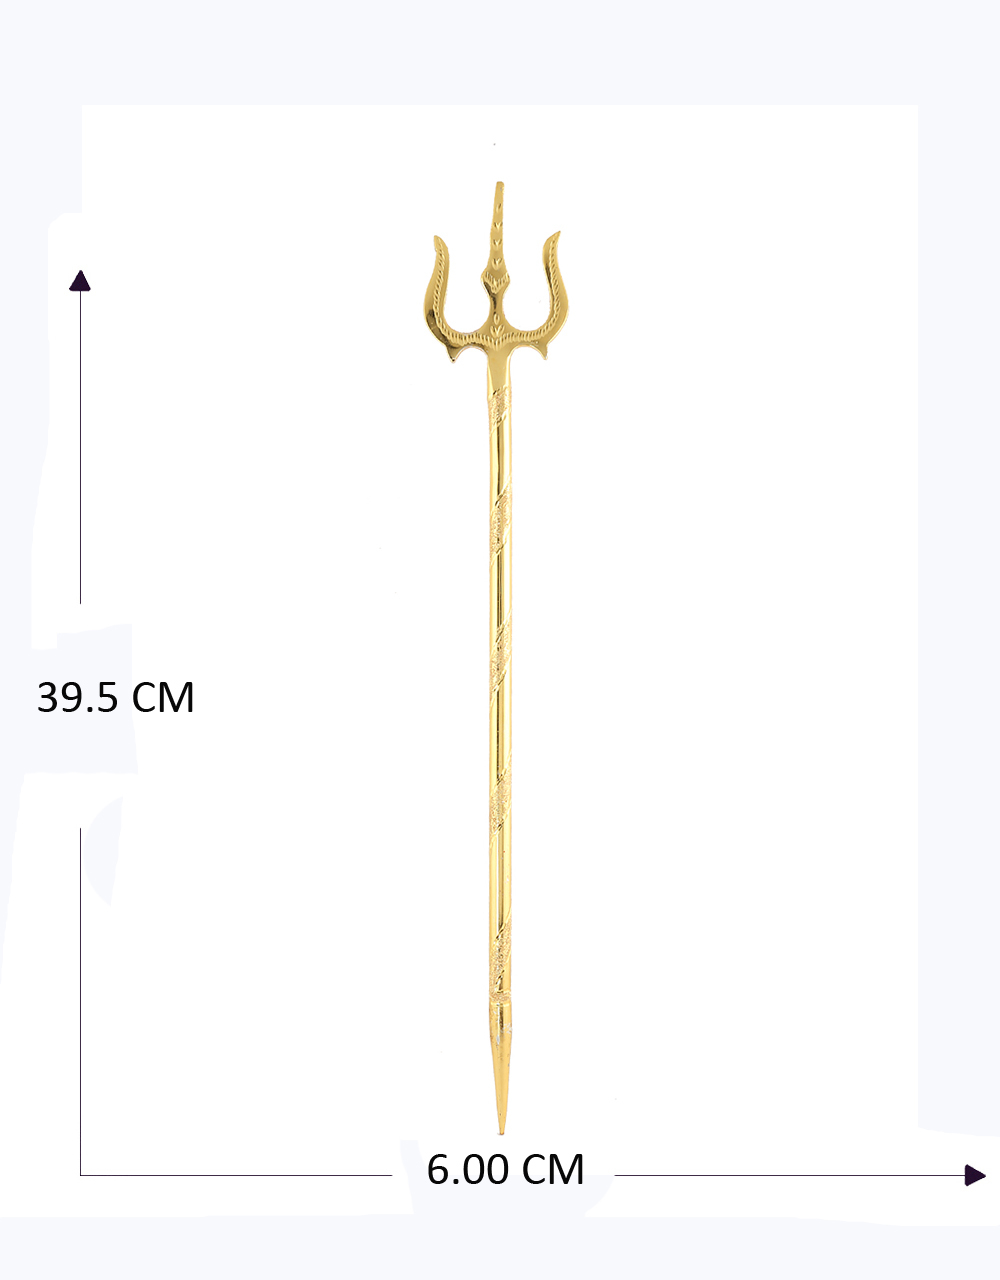 Gold Tone Trishul For Ganpati Decoration